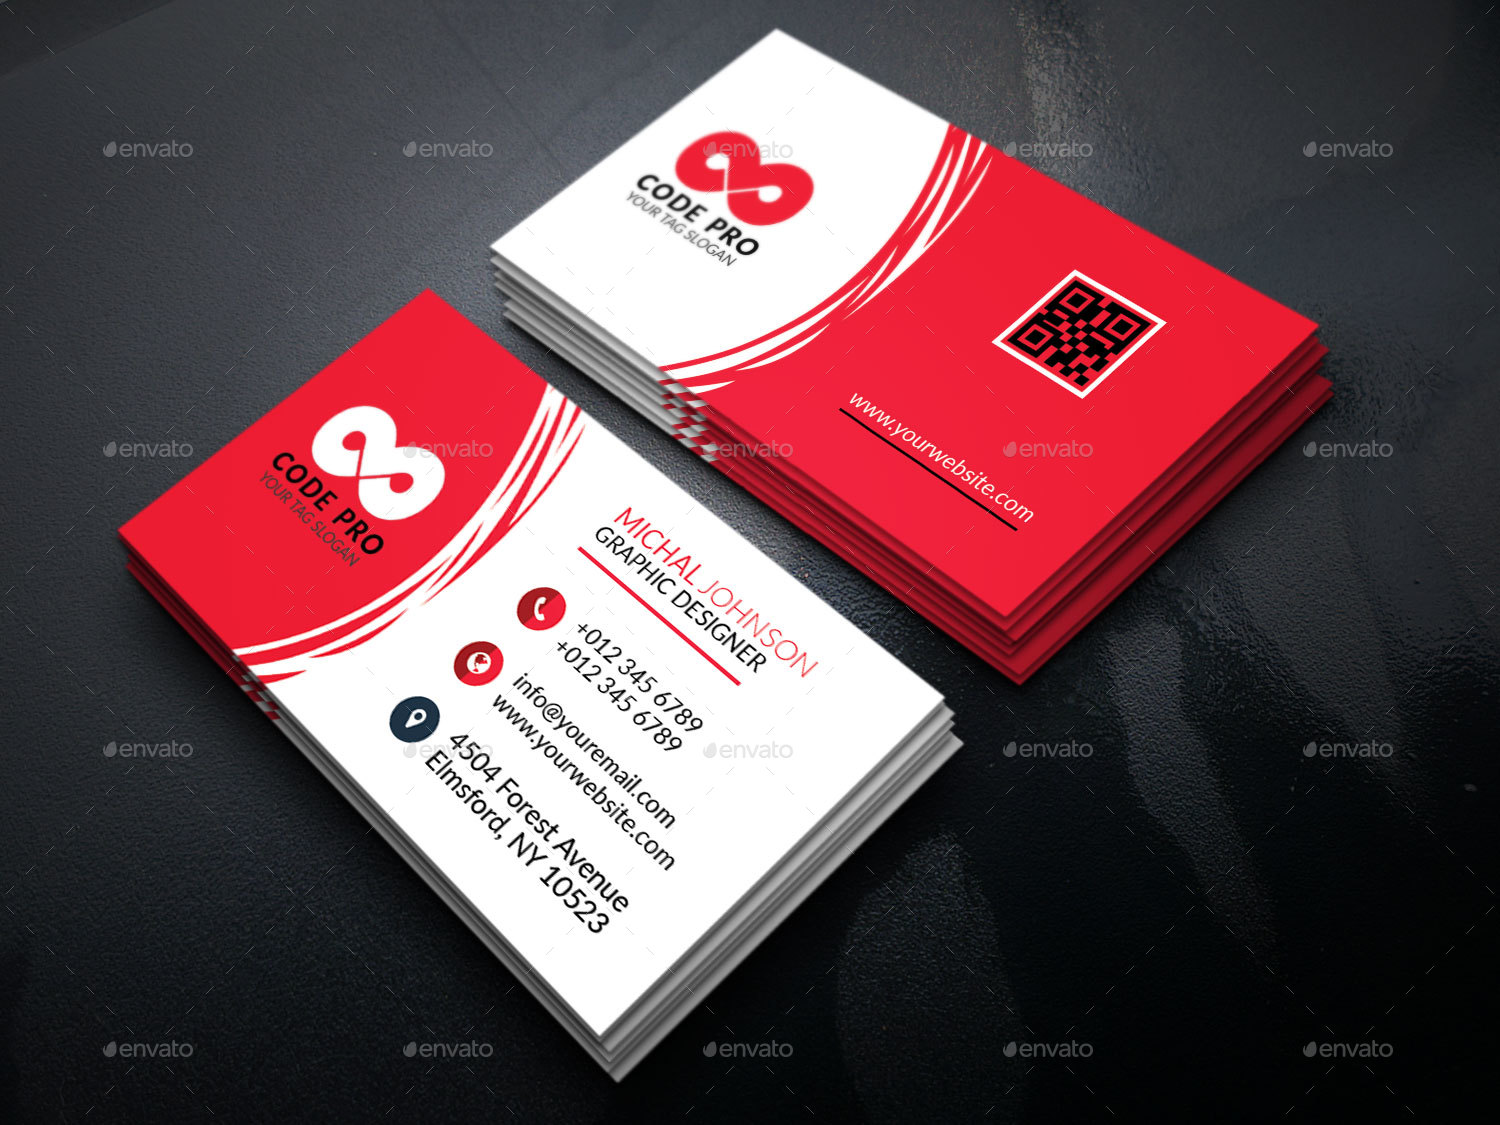 Creative corporate business card by designzeal graphicriver creative corporate business card business cards print templates preview image set01previewg preview image set02previewg preview image reheart Choice Image